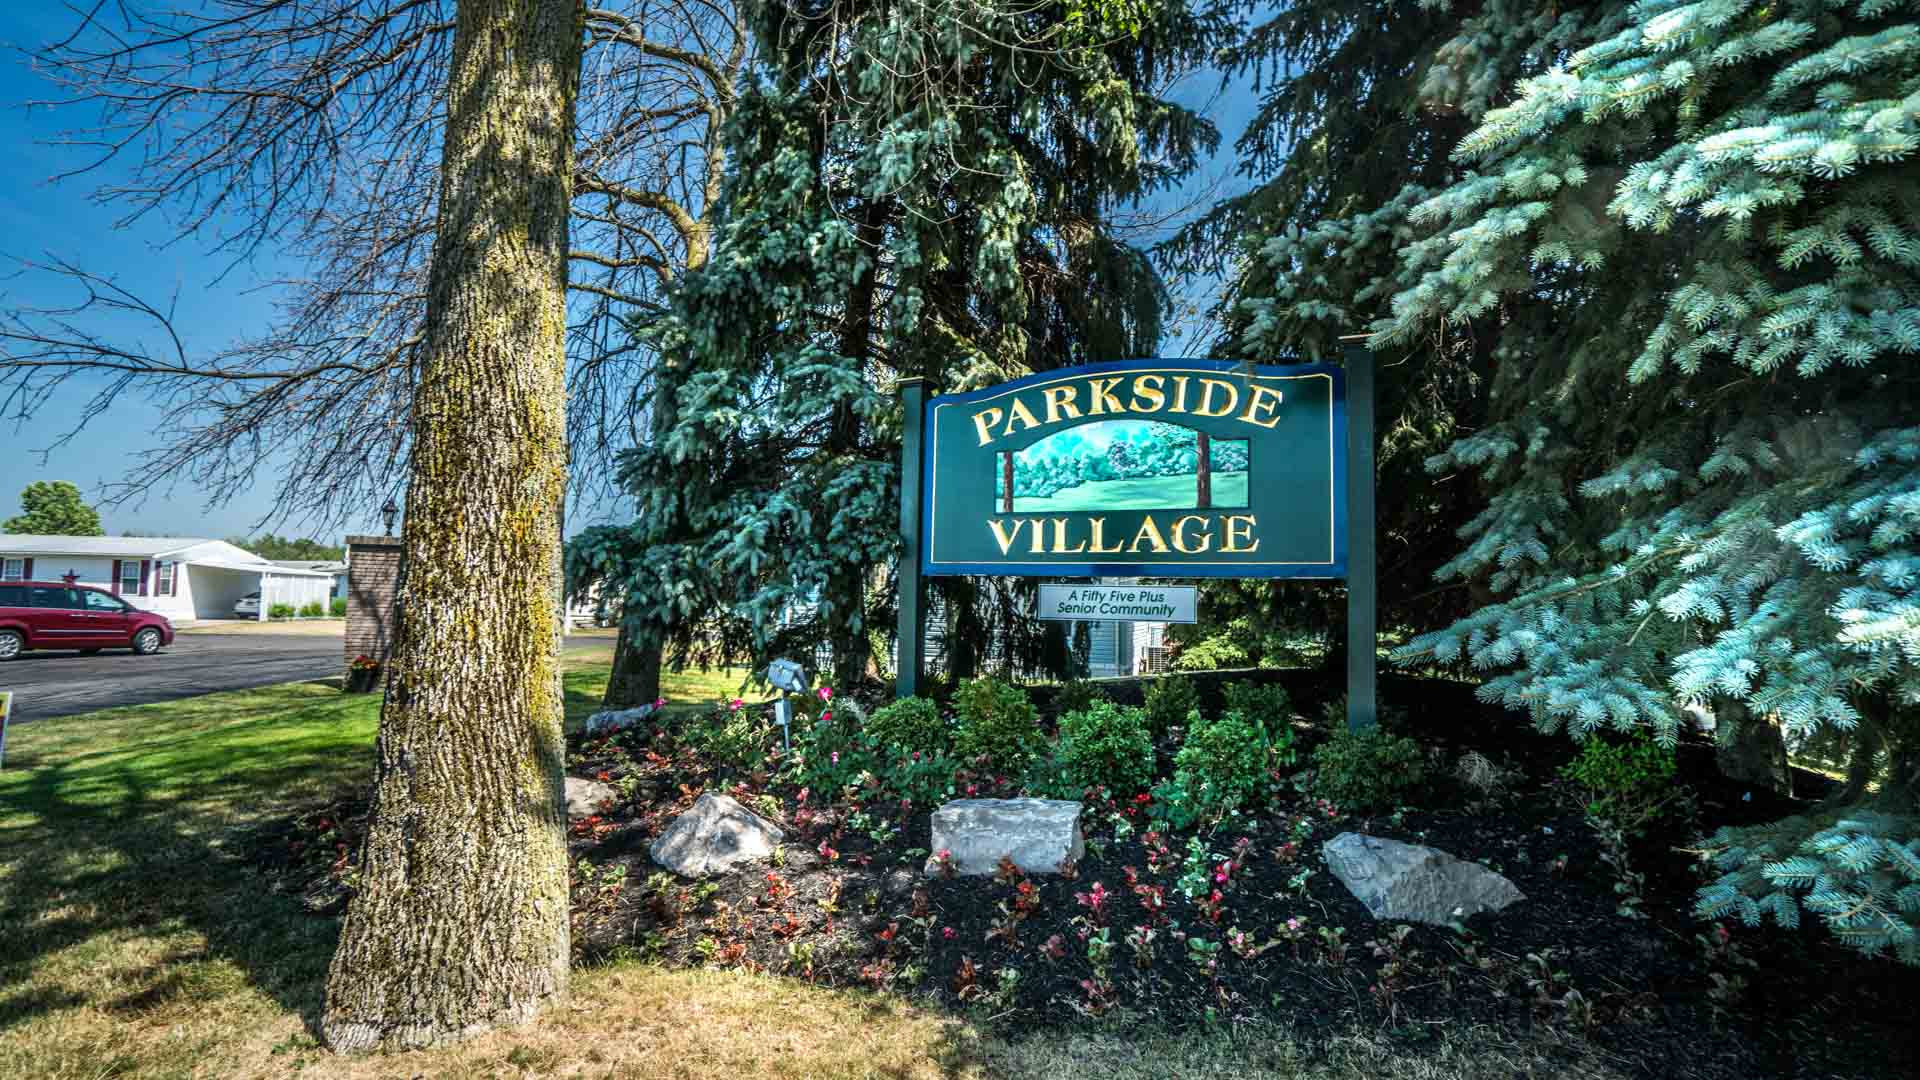 Parkside Village 55+ Manufactured Homes Community Entrance Sign in Buffalo, NY